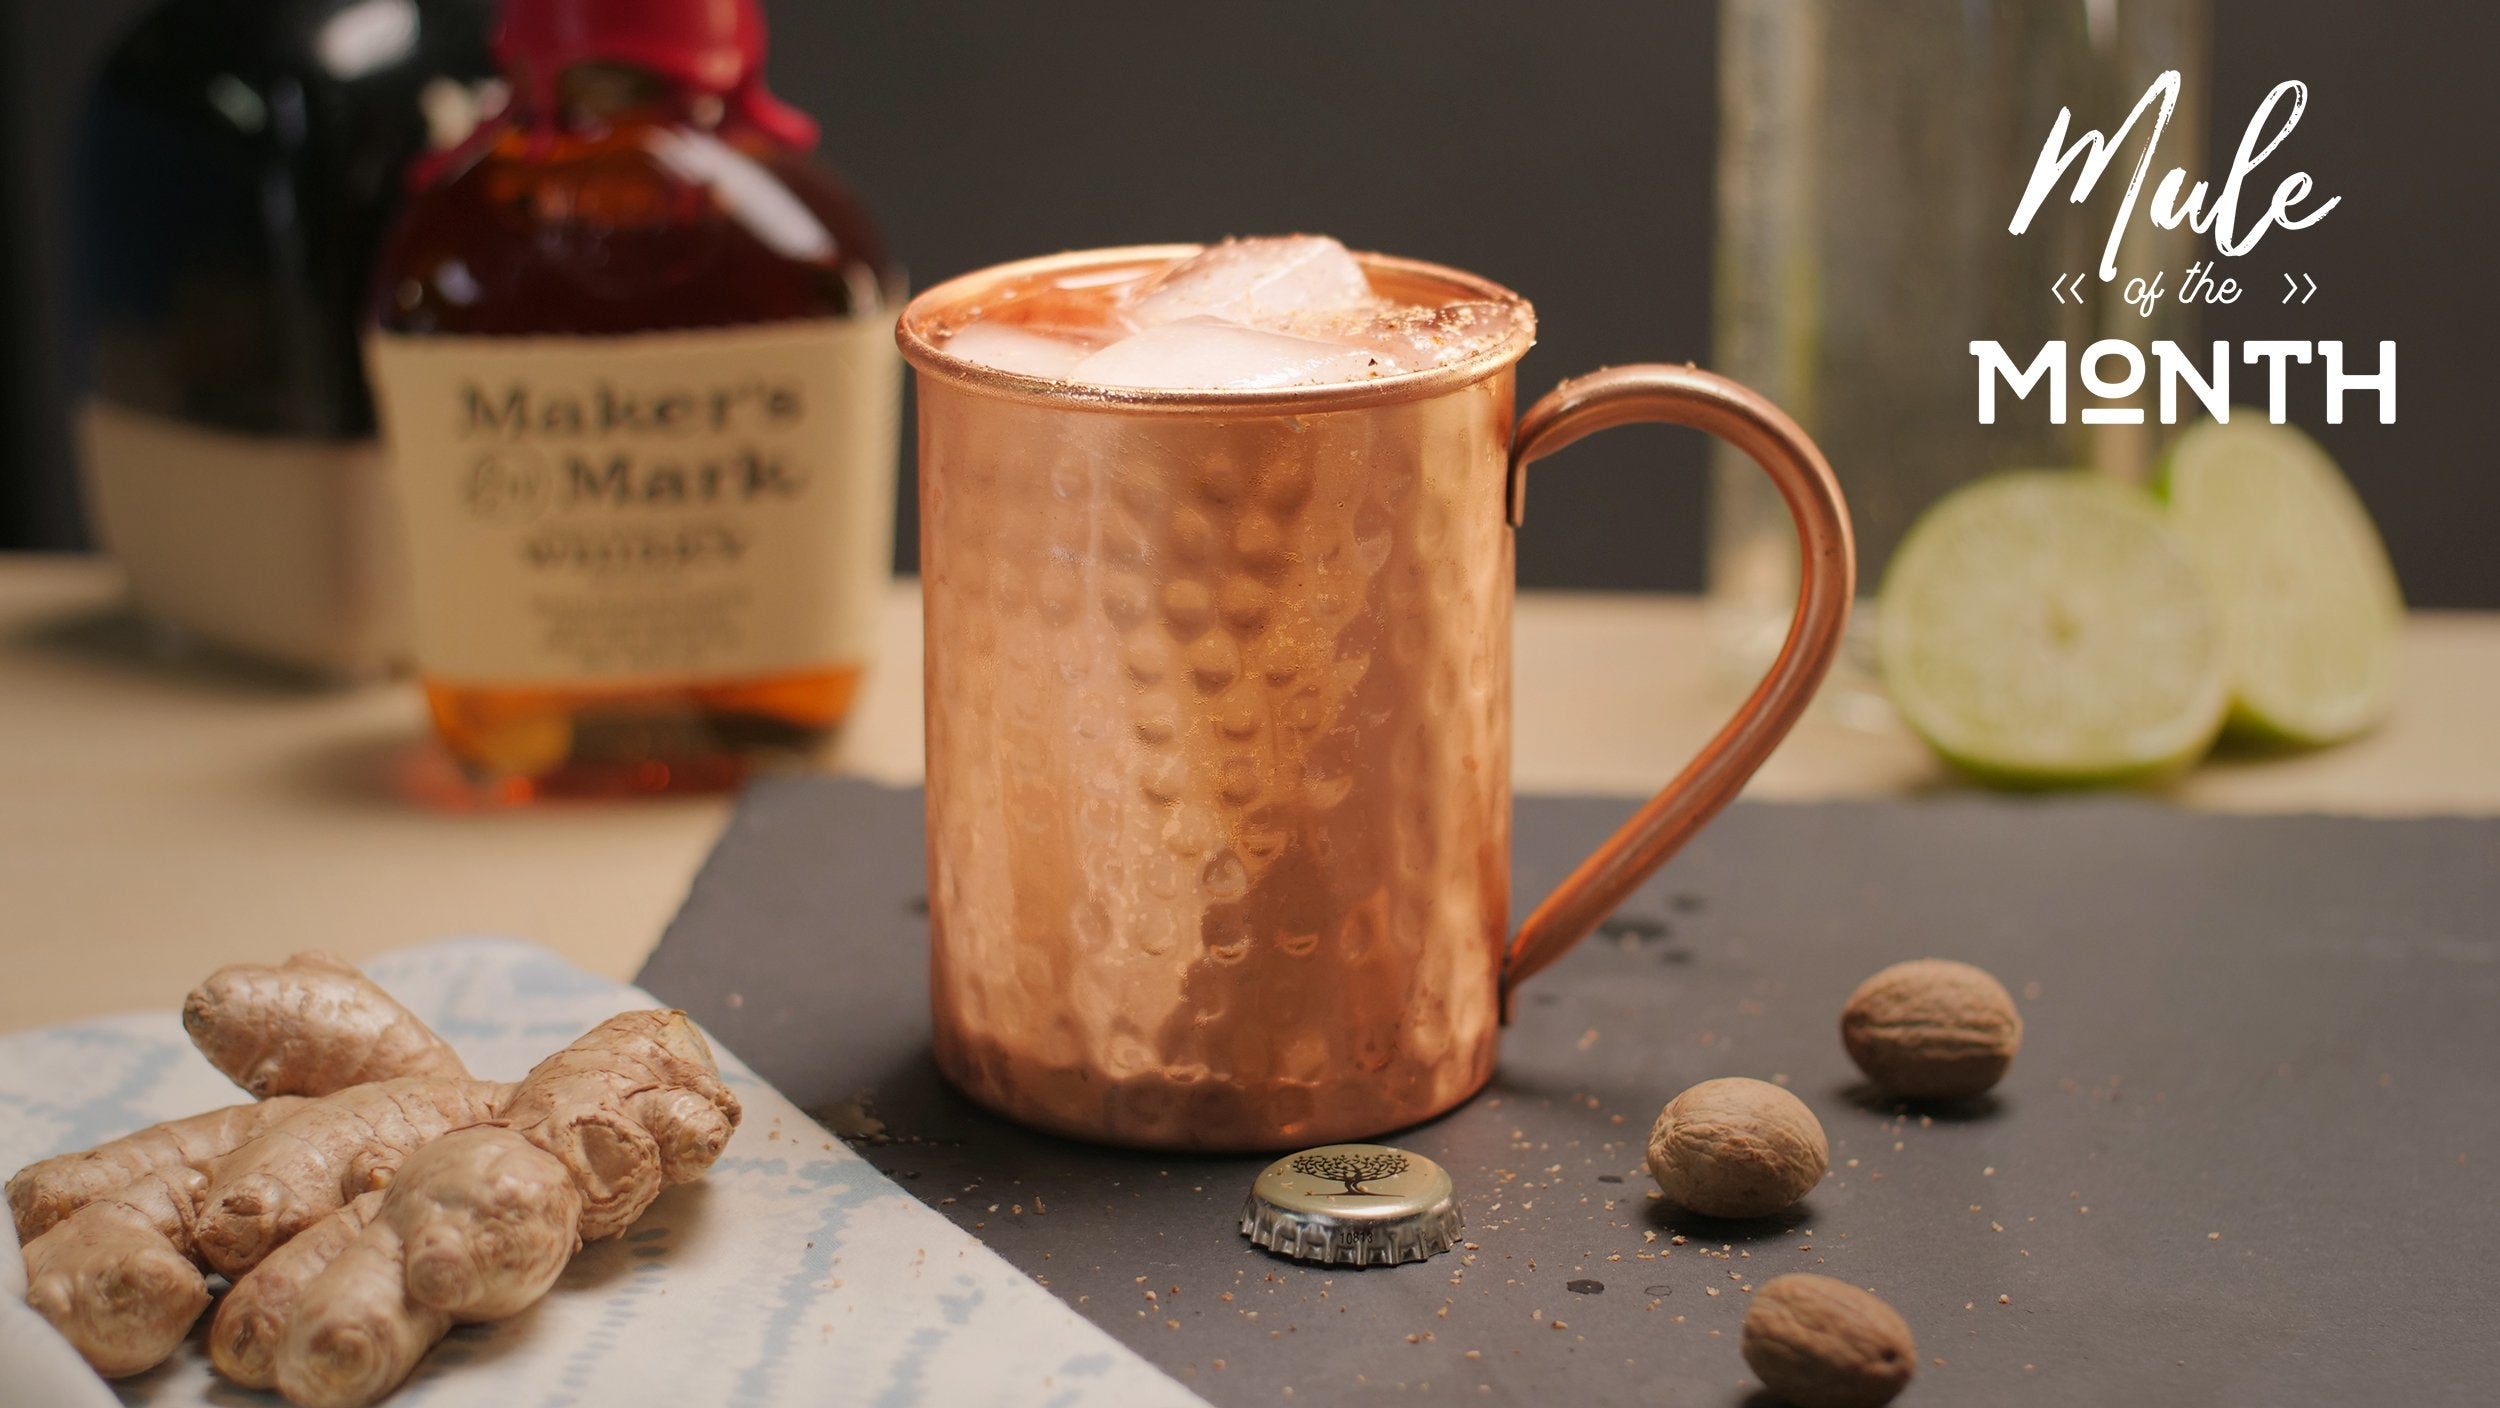 Whiskey Ginger Mule